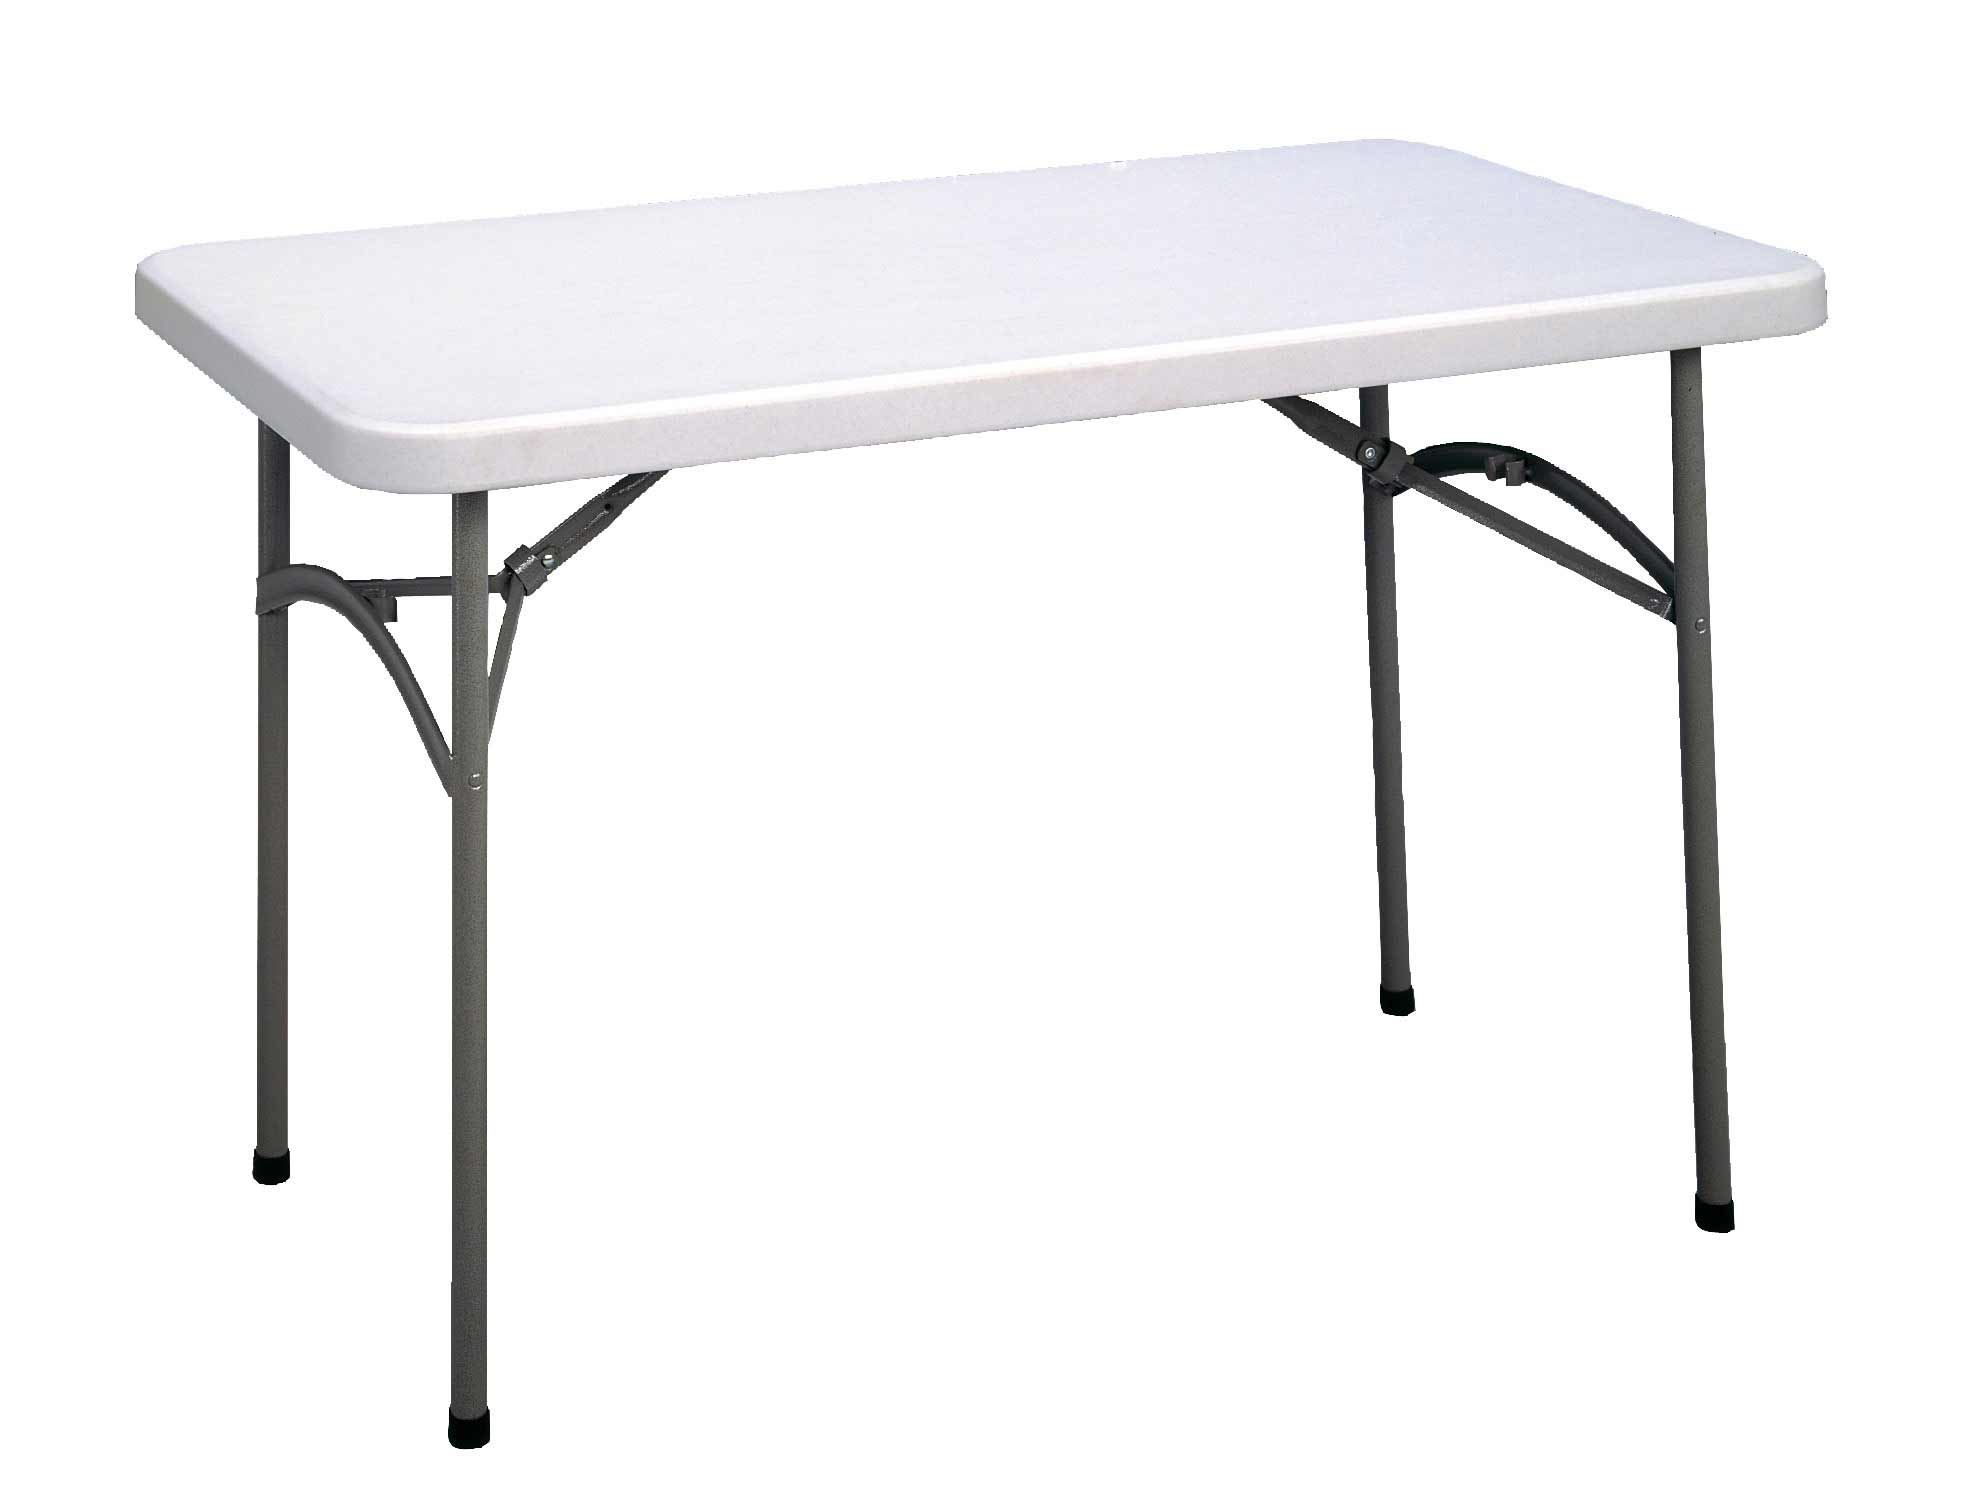 Rectangular white portable table top